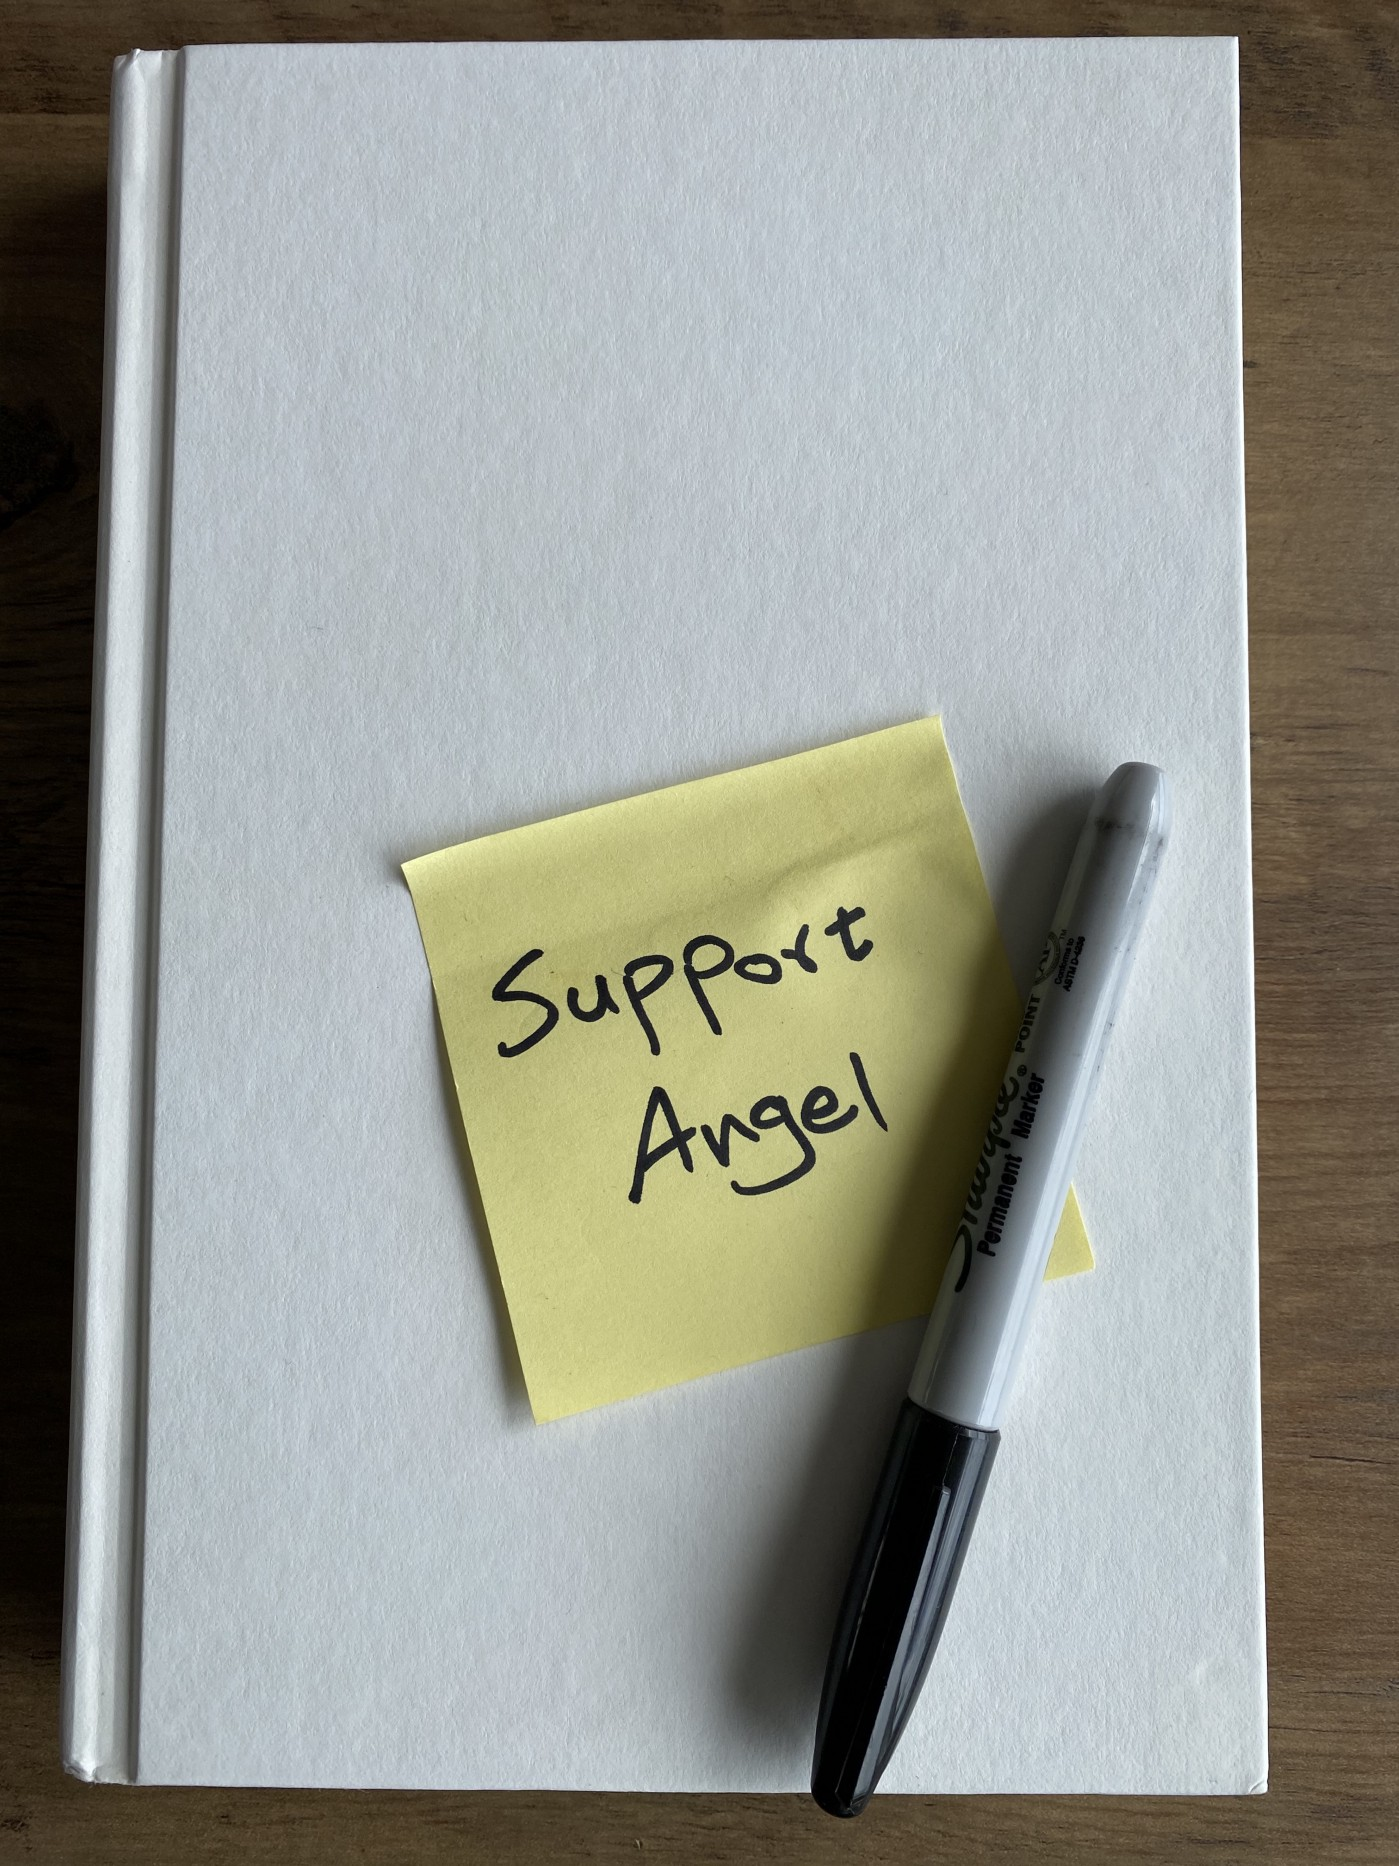 Support Angel for handling external disruptors during the sprint by Hamid Zarei